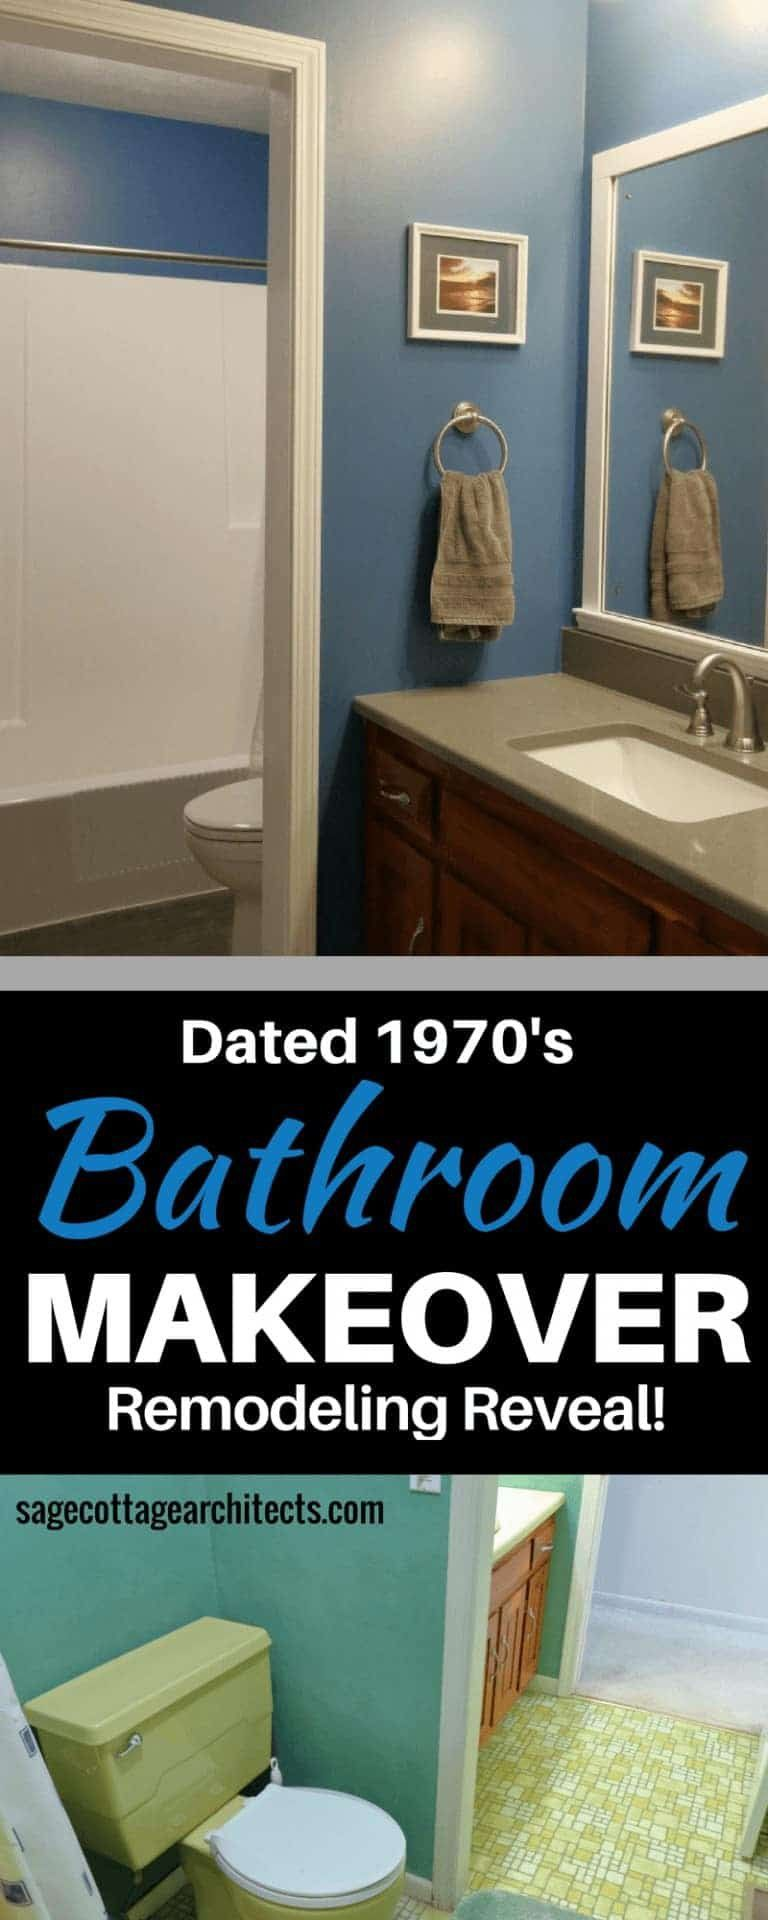 Photo of Dated 1970's Bathroom Makeover – Beautiful Bathroom Remodeling Reveal • Sage Cottage Architects